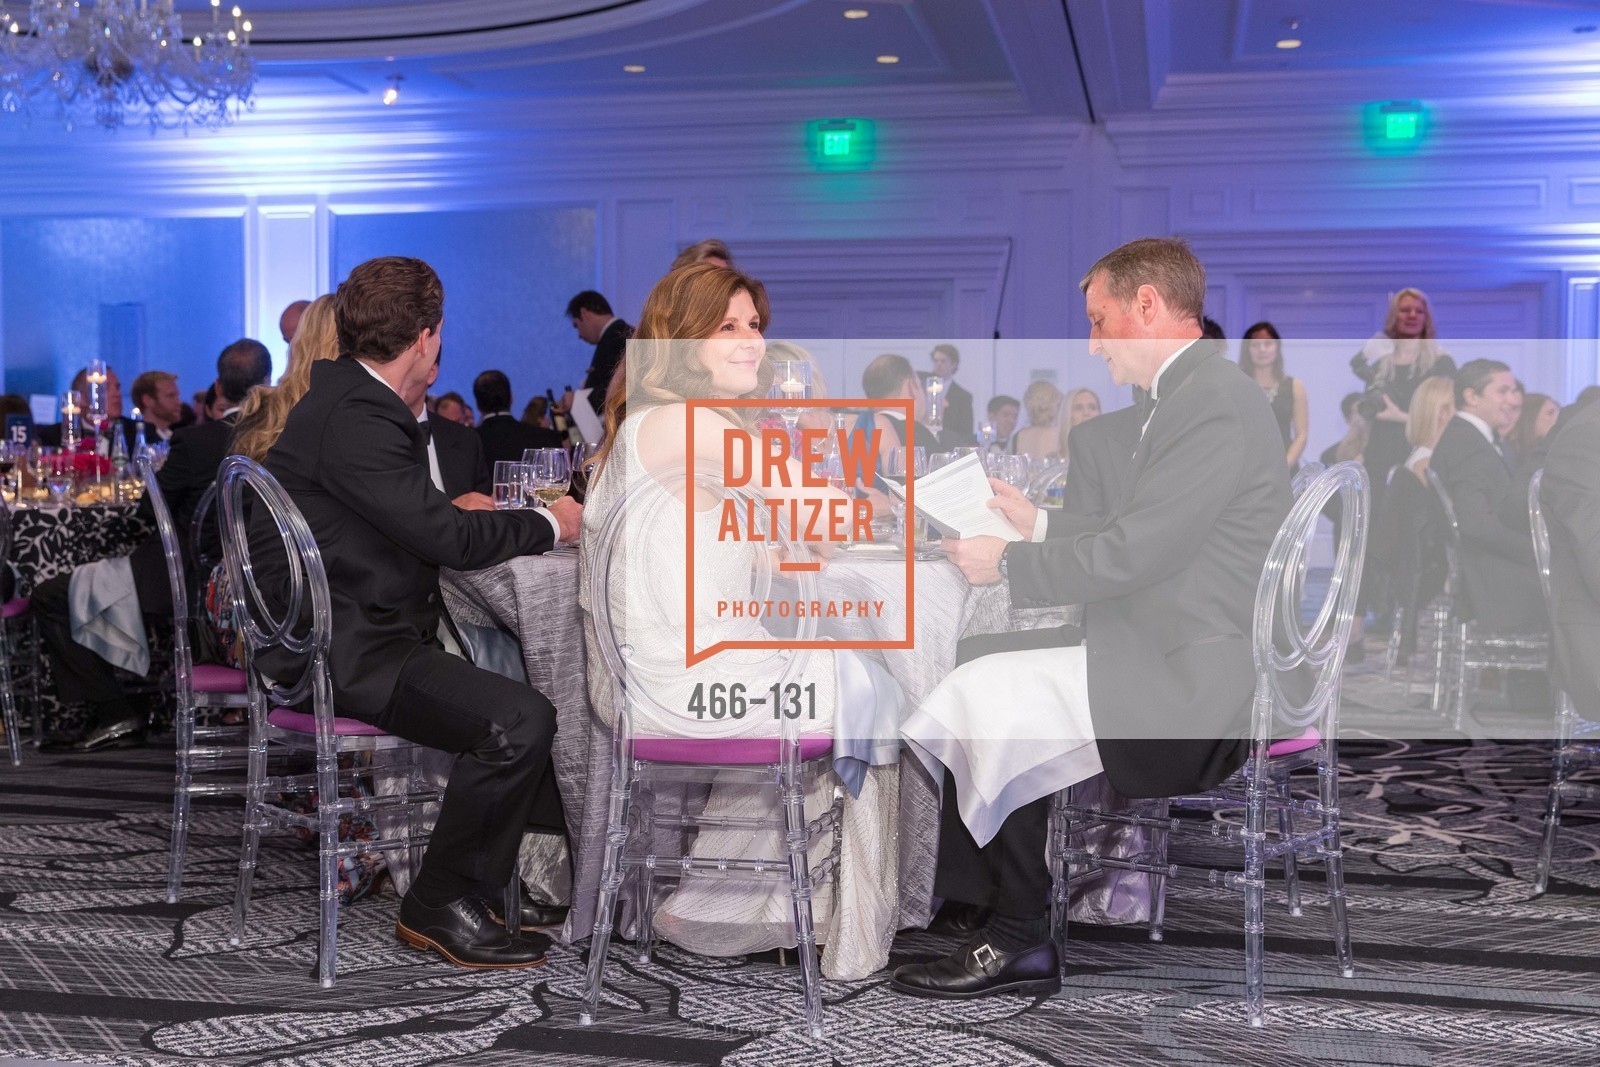 Beth Wiesbrock, JUVENILE DIABETES RESEARCH FOUNDATION  Hope Gala, The Ritz-Carlton, May 29th, 2015,Drew Altizer, Drew Altizer Photography, full-service agency, private events, San Francisco photographer, photographer california